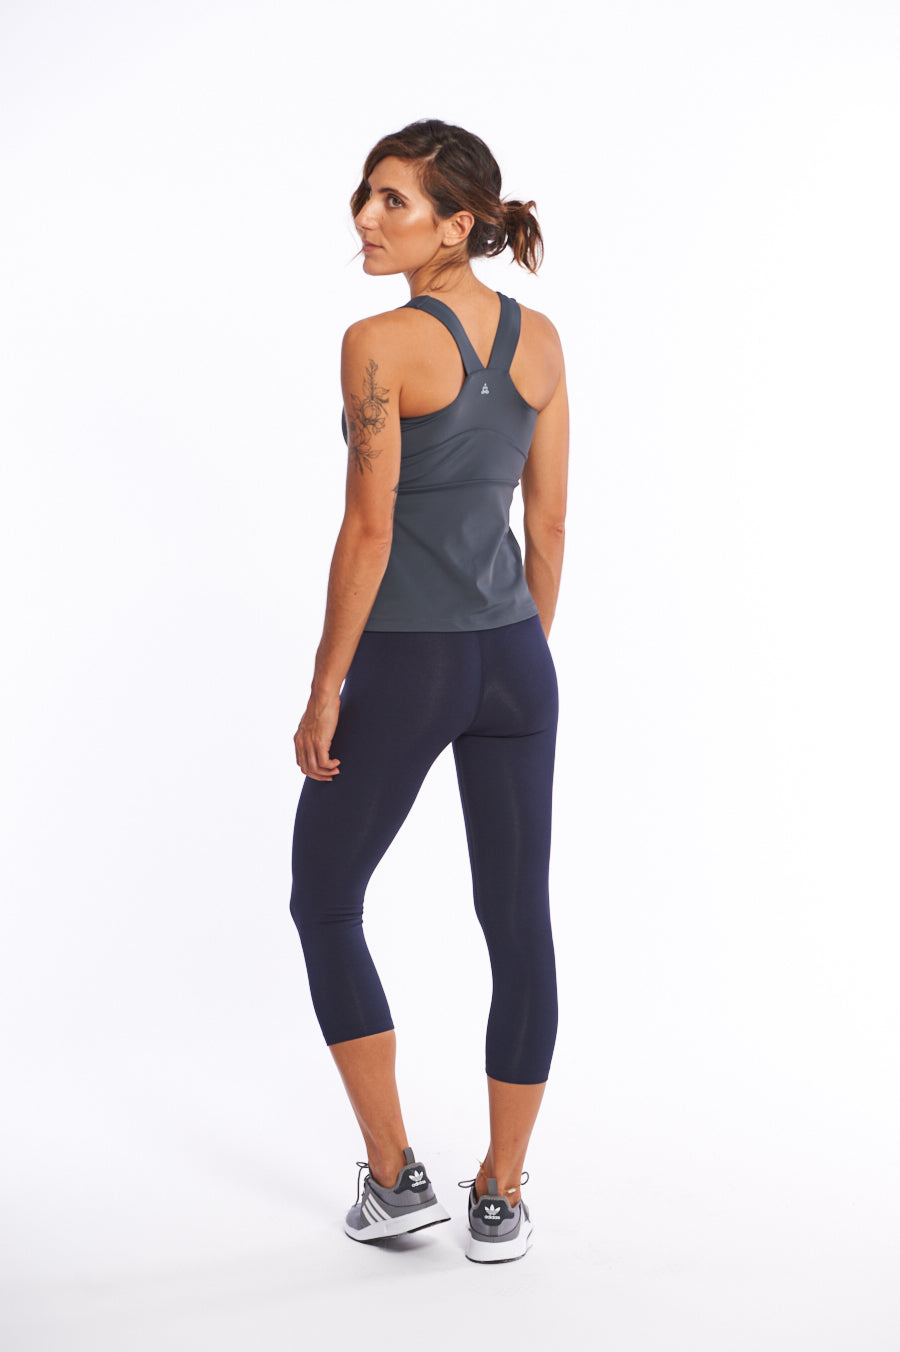 Quick drying activewear top for hot yoga